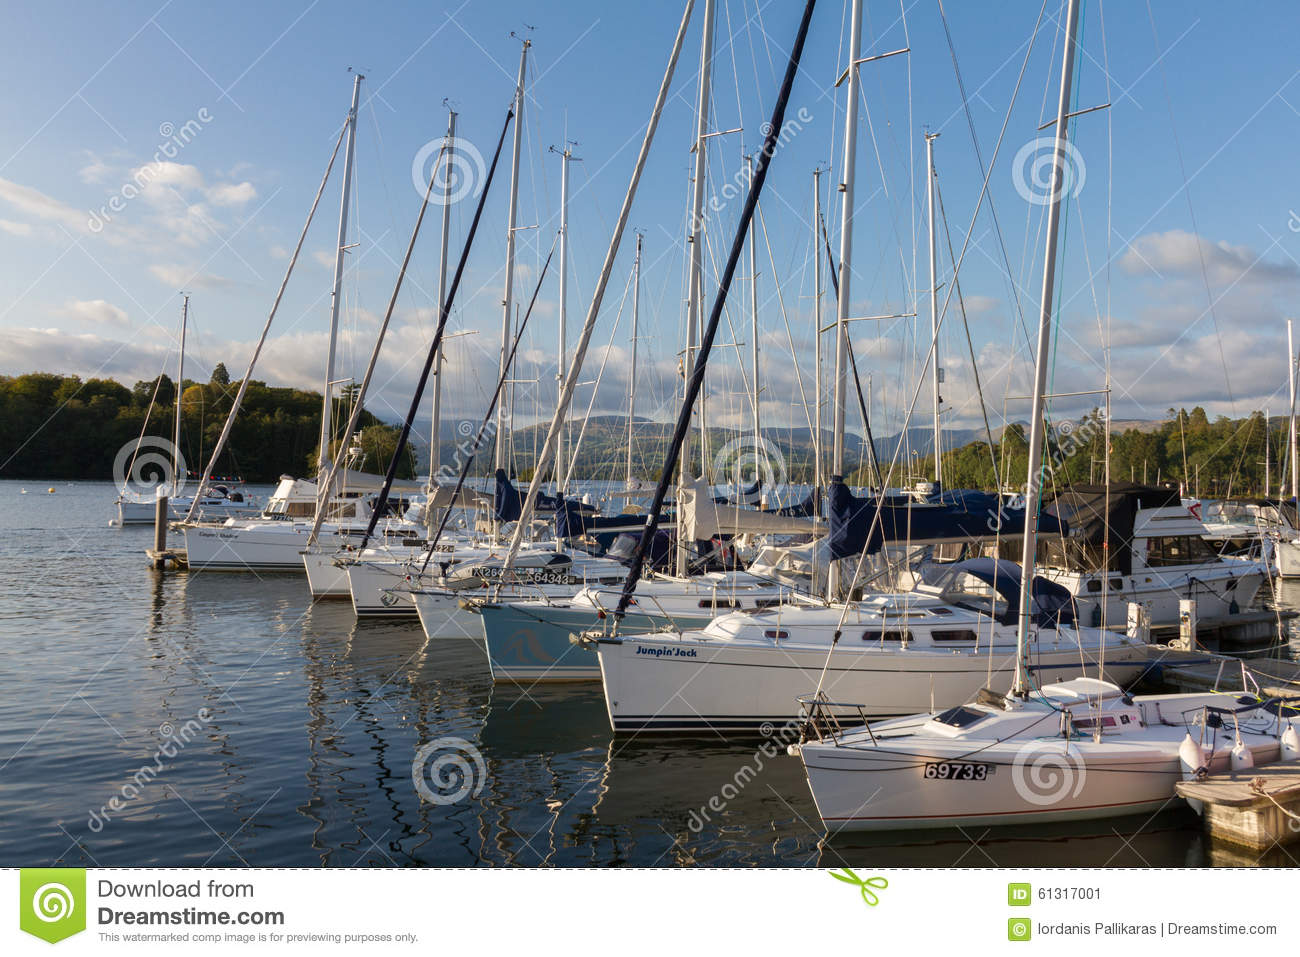 Bowness-On-Windermere United Kingdom  city pictures gallery : Bowness on Windermere, United Kingdom September 7, 2015: This is an ...